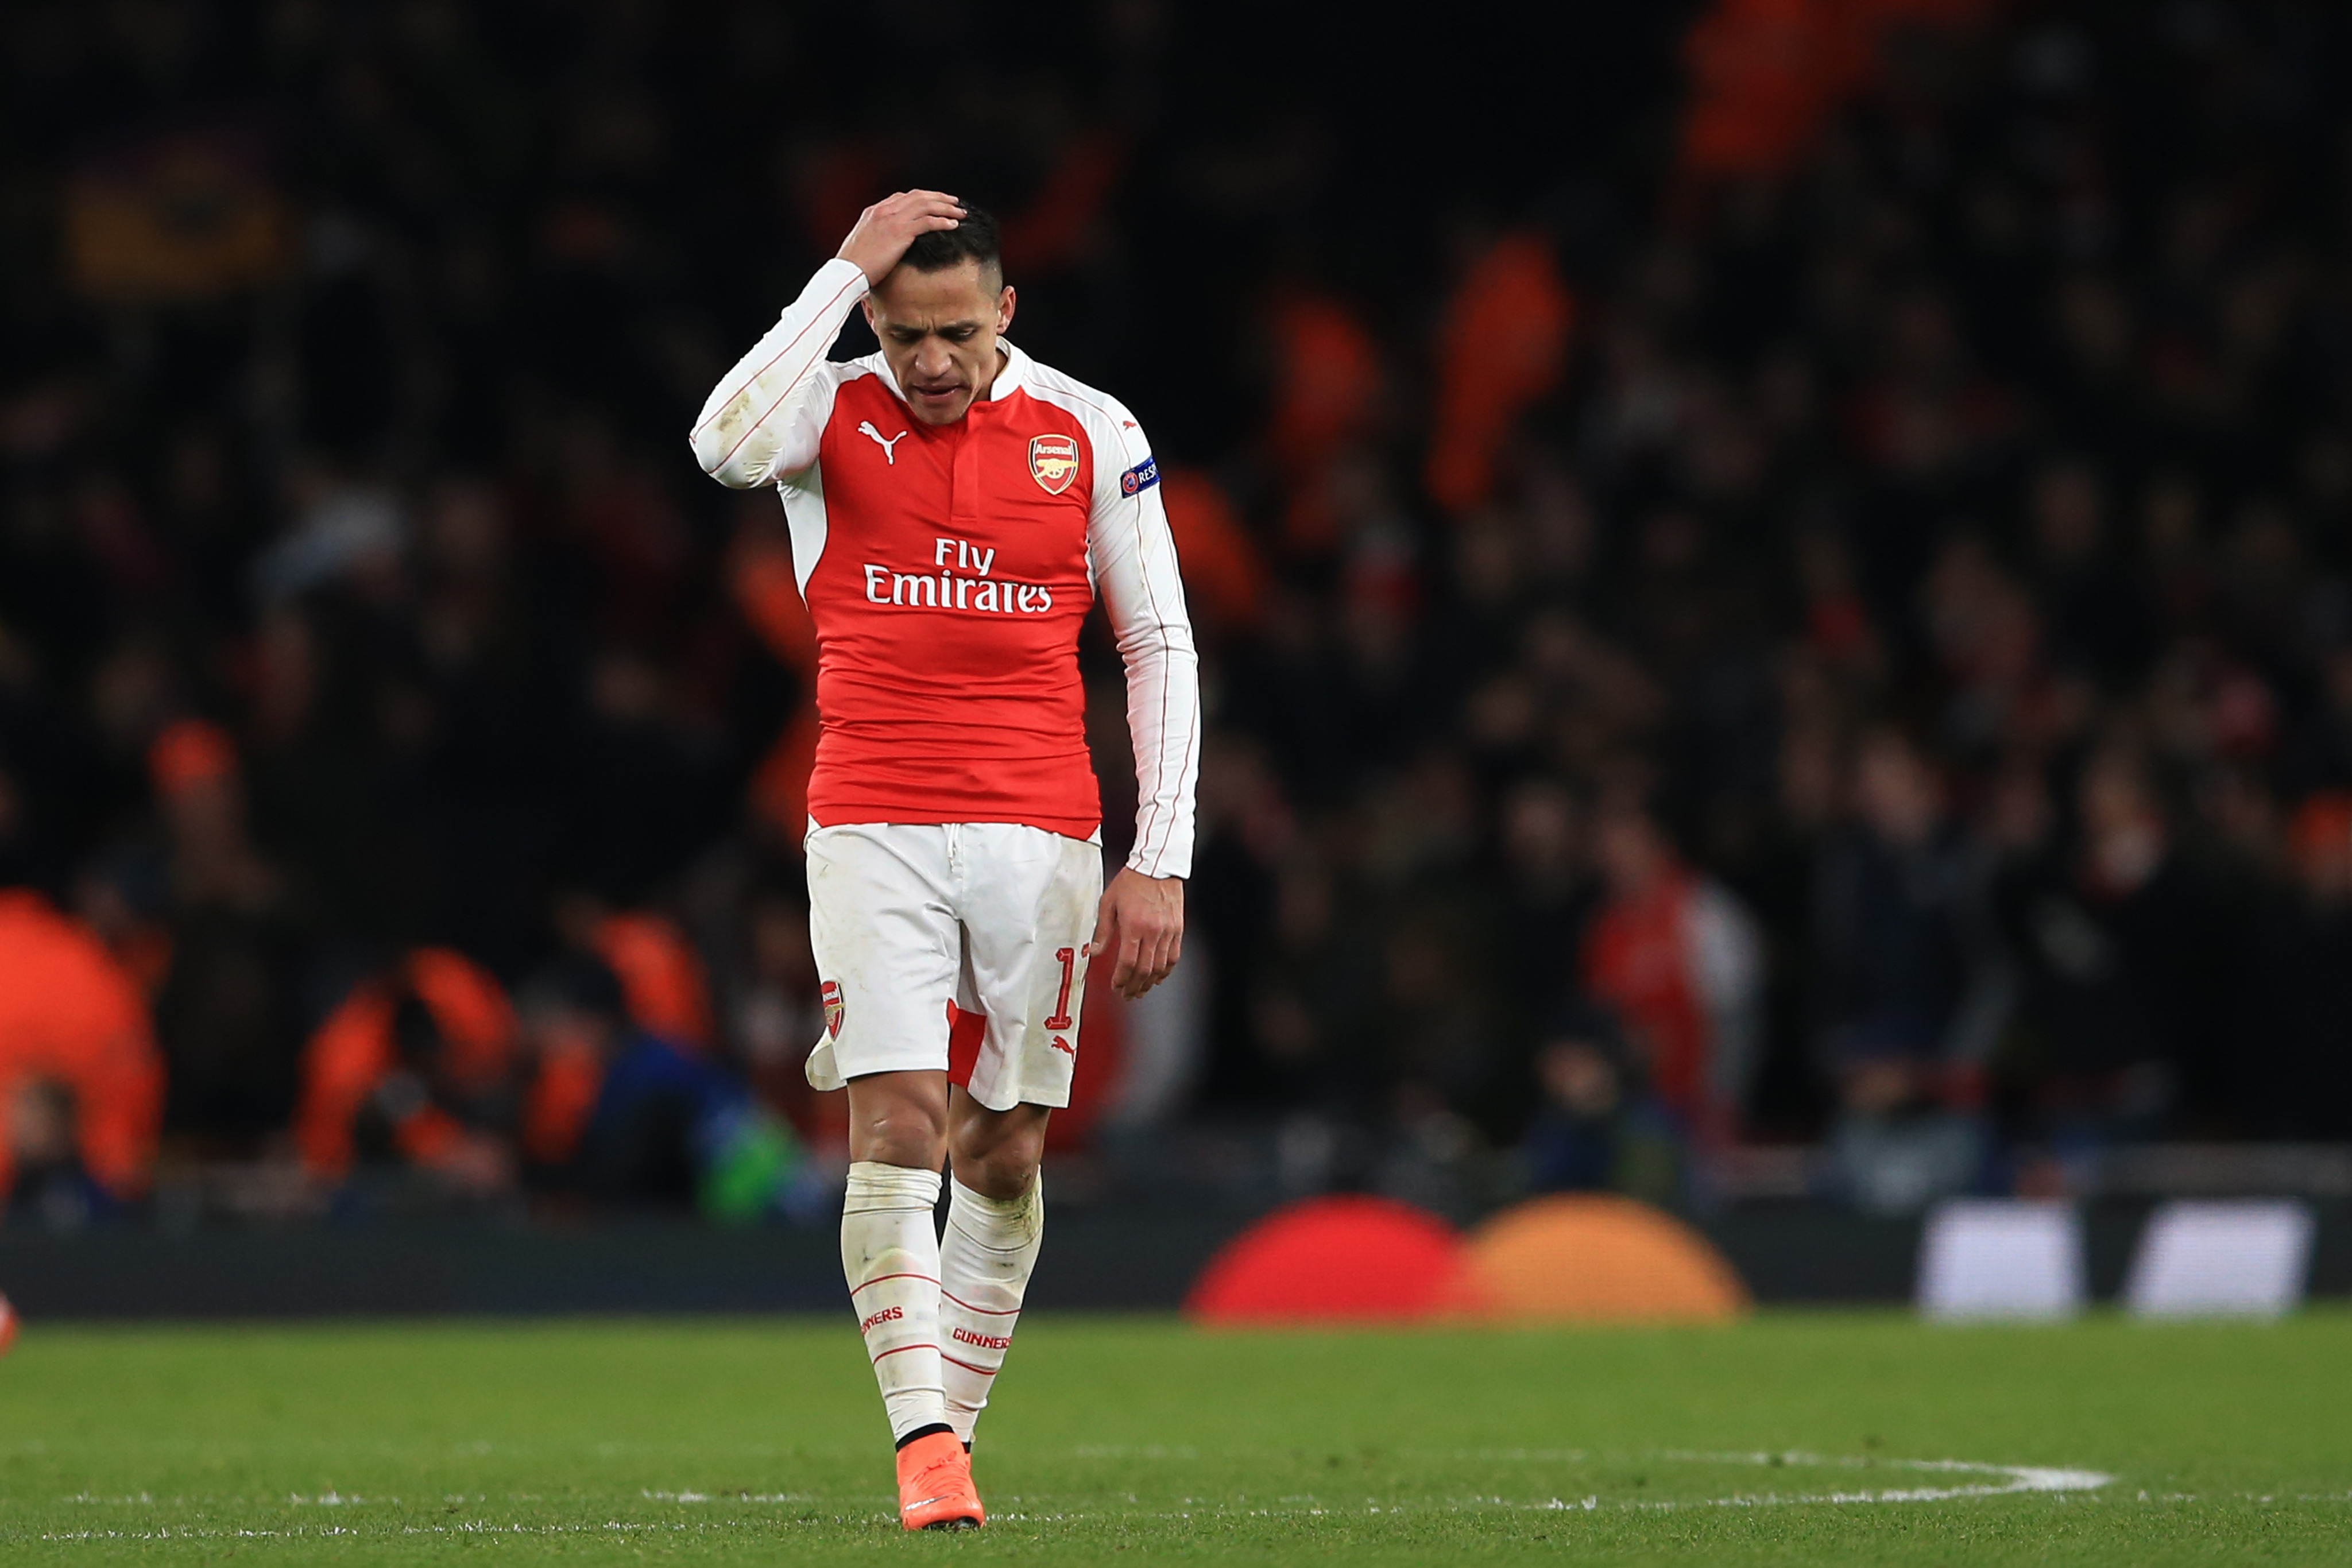 Sanchez has two options left as Bayern seemingly snub Arsenal star